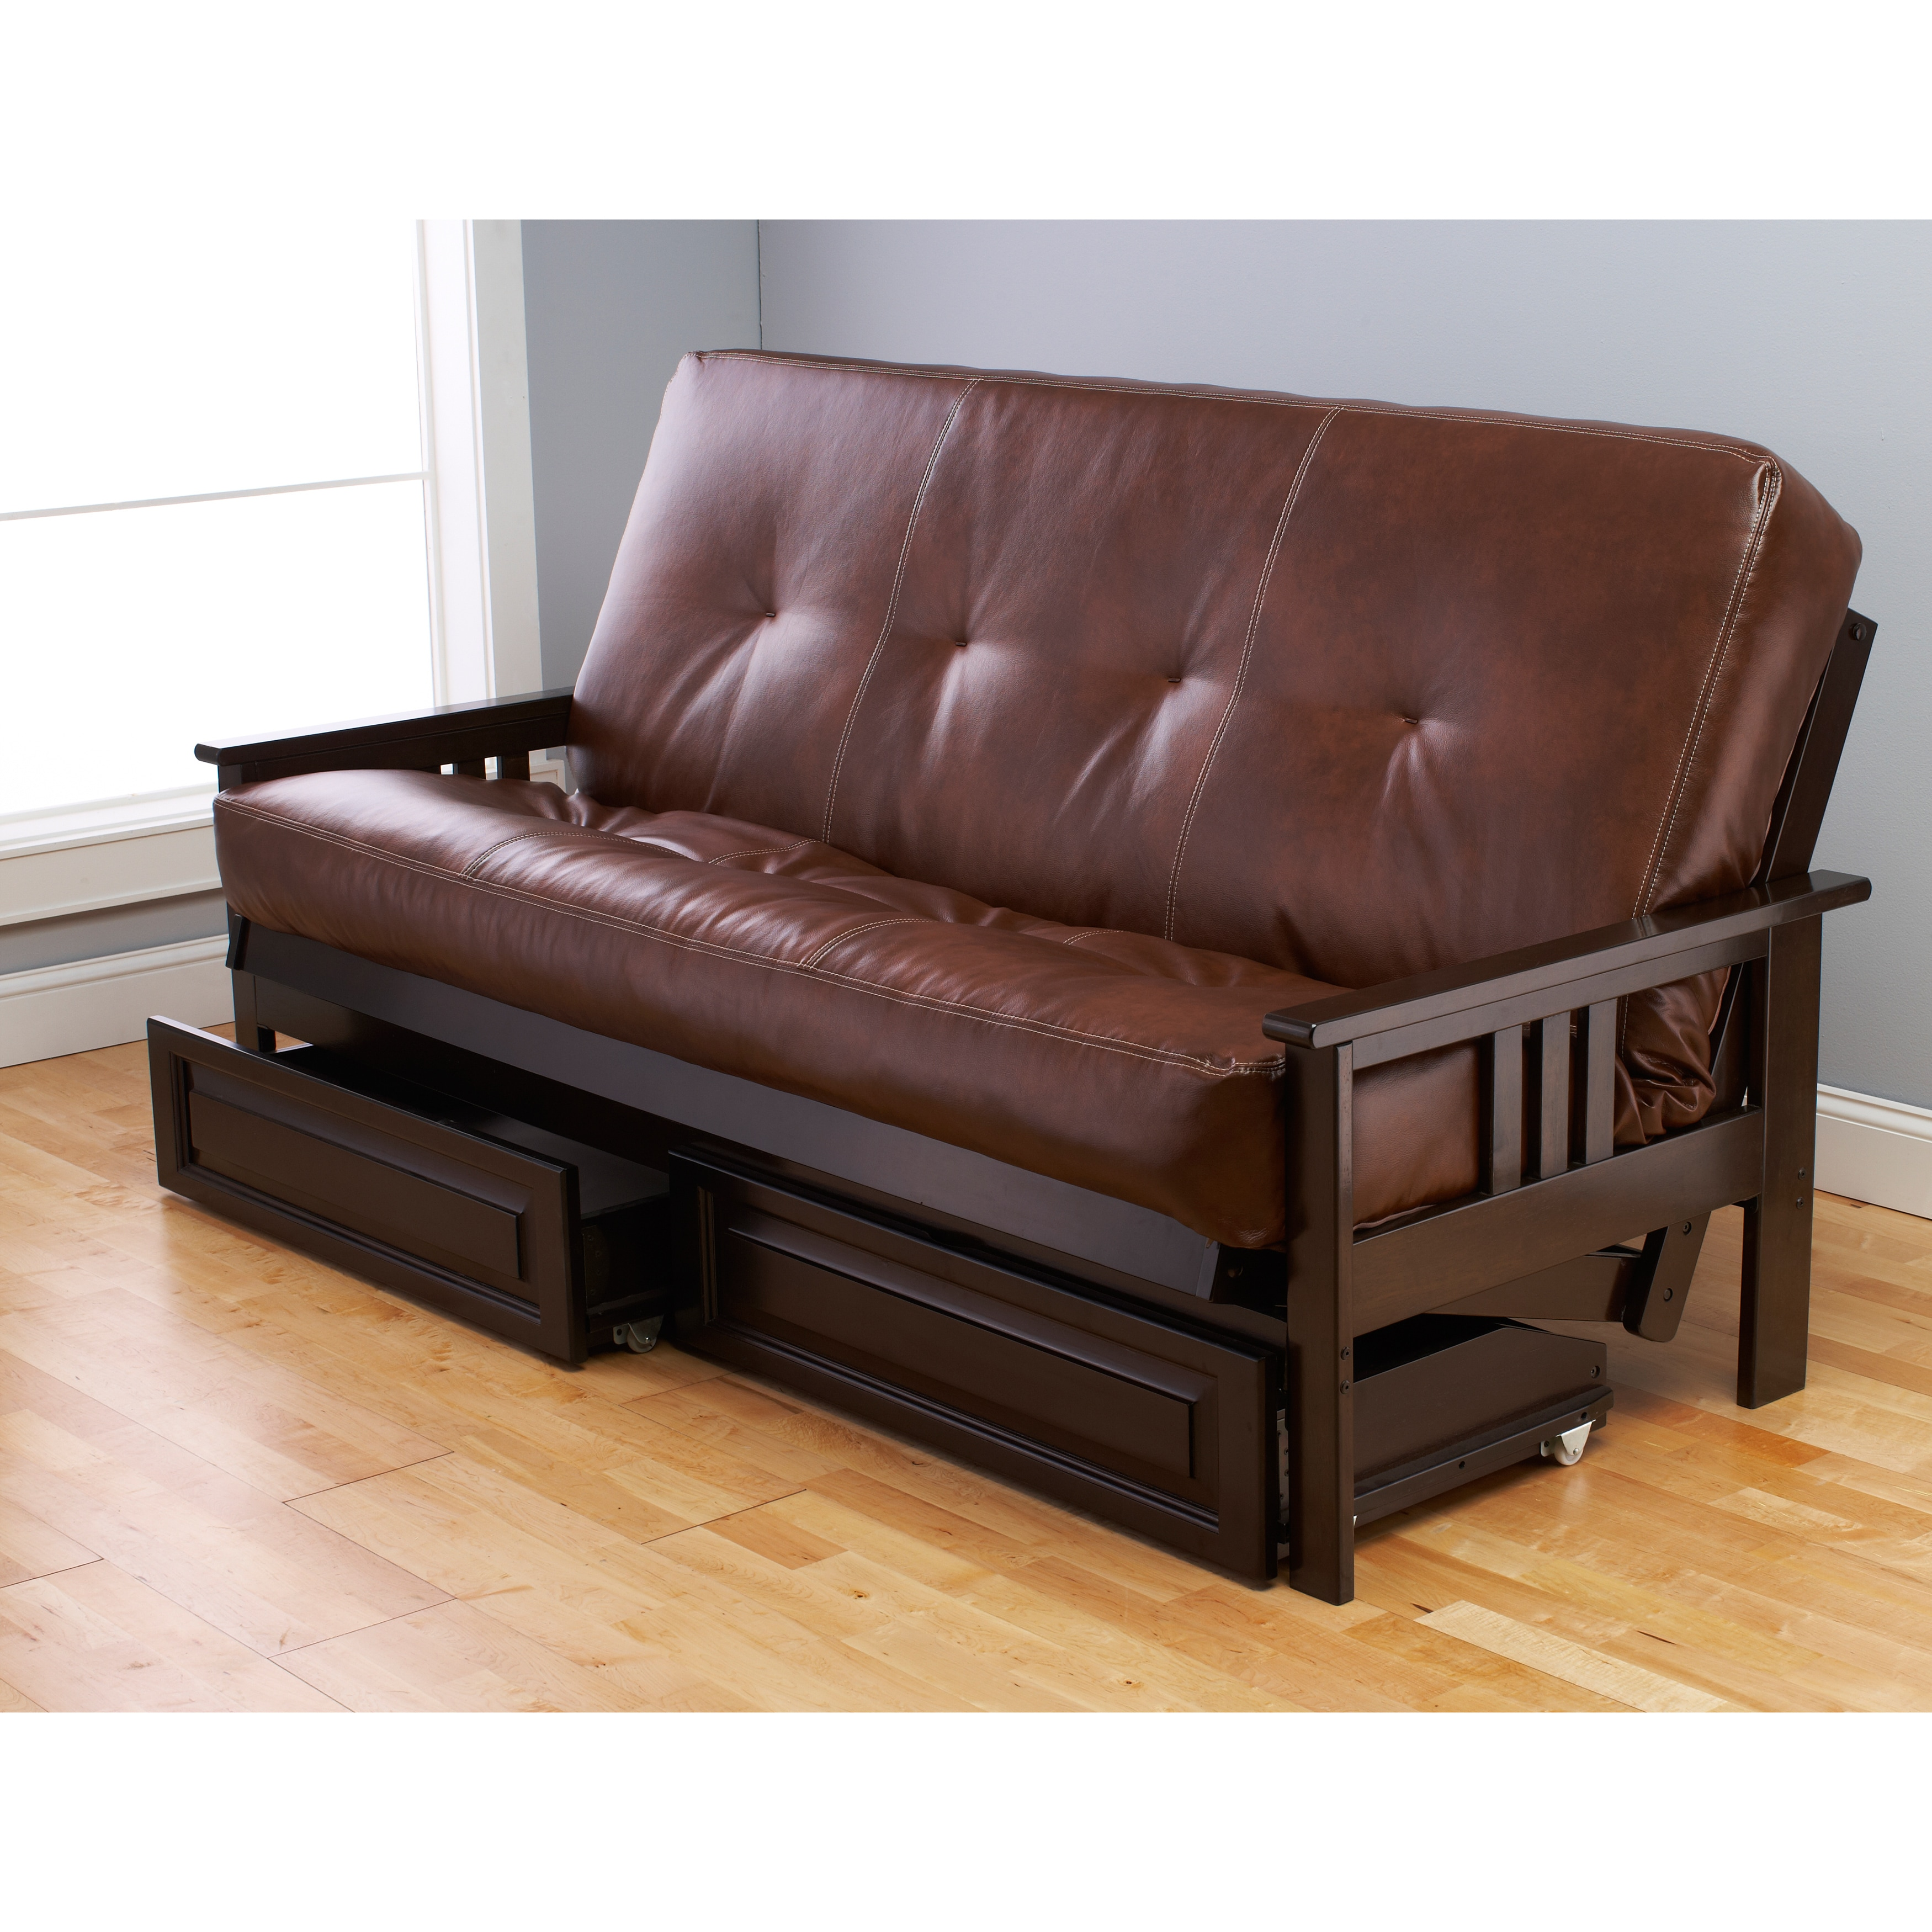 Bonded Leather Beli Mont Multi-Flex Espresso Futon Frame, Drawers and Mattress Set at Sears.com